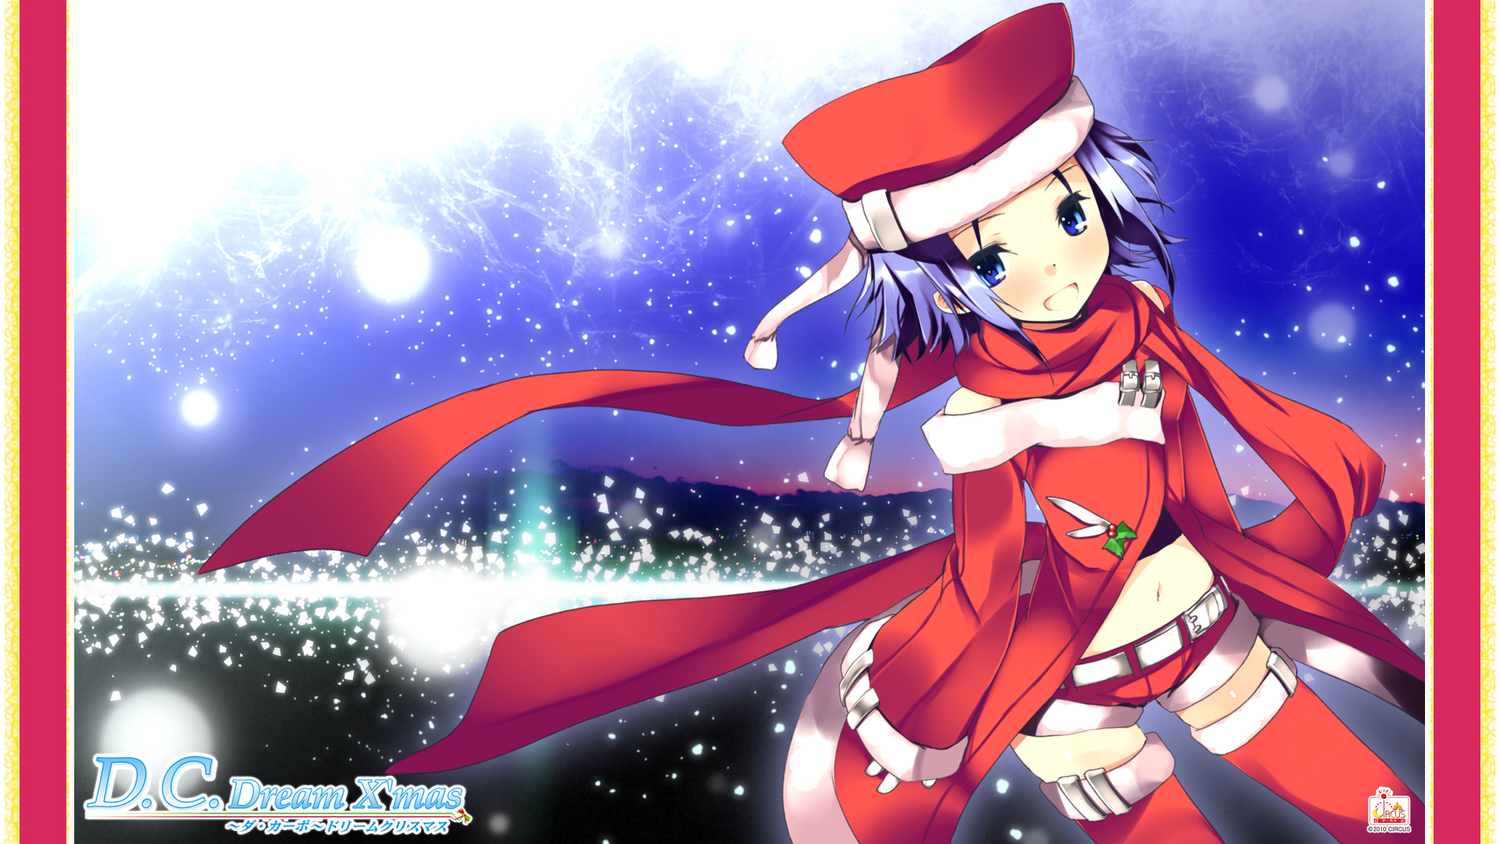 amakase_minatsu blue_eyes christmas da_capo_dream_x'mas hat purple_hair refeia santa_costume scarf short_hair thighhighs